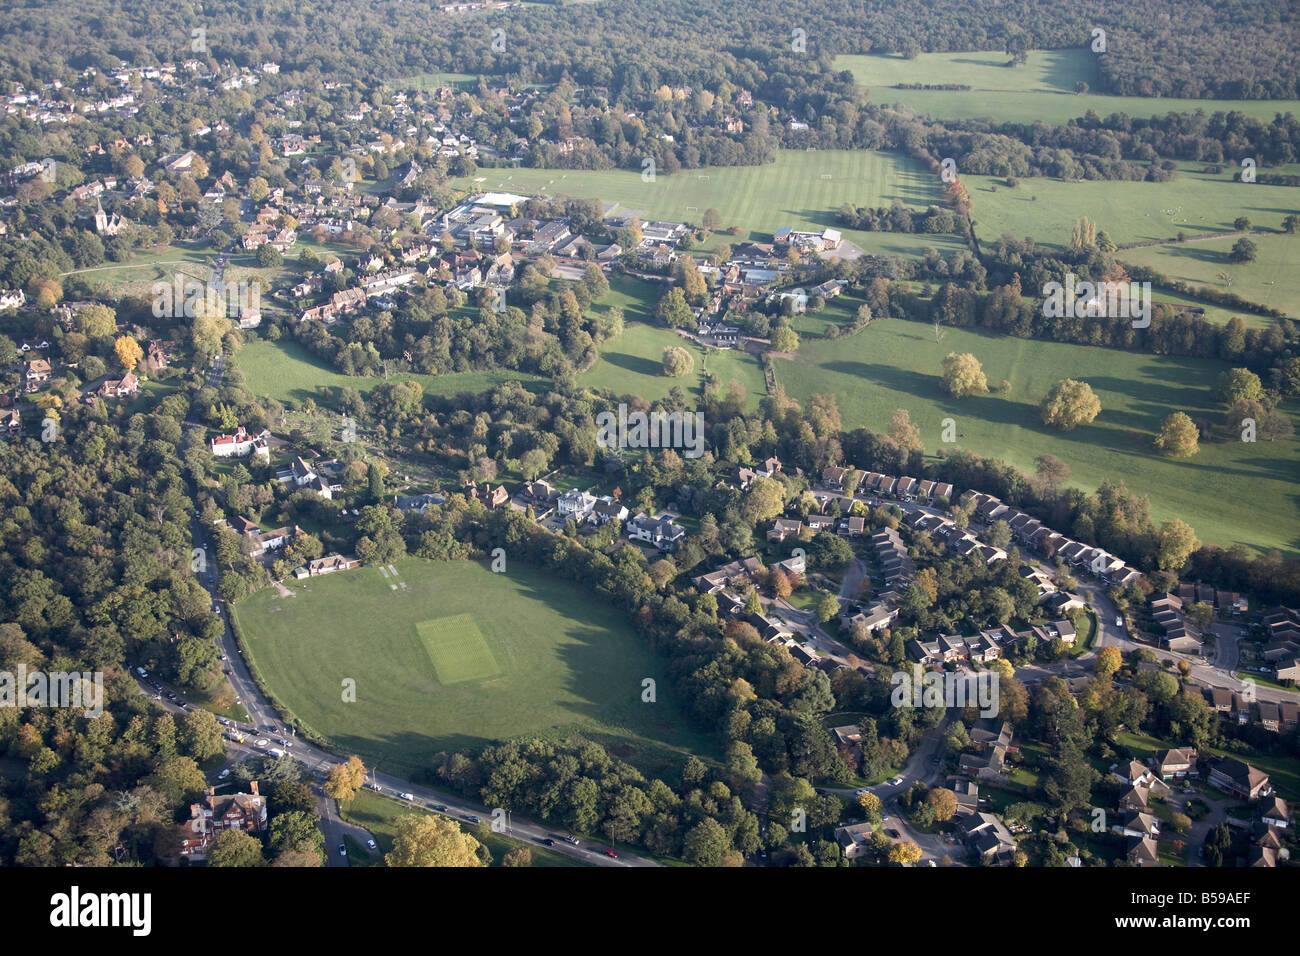 Aerial view south east of cricket ground Bansome Wood suburban houses Watt s Lane Norlands Crescent Bromley London - Stock Image